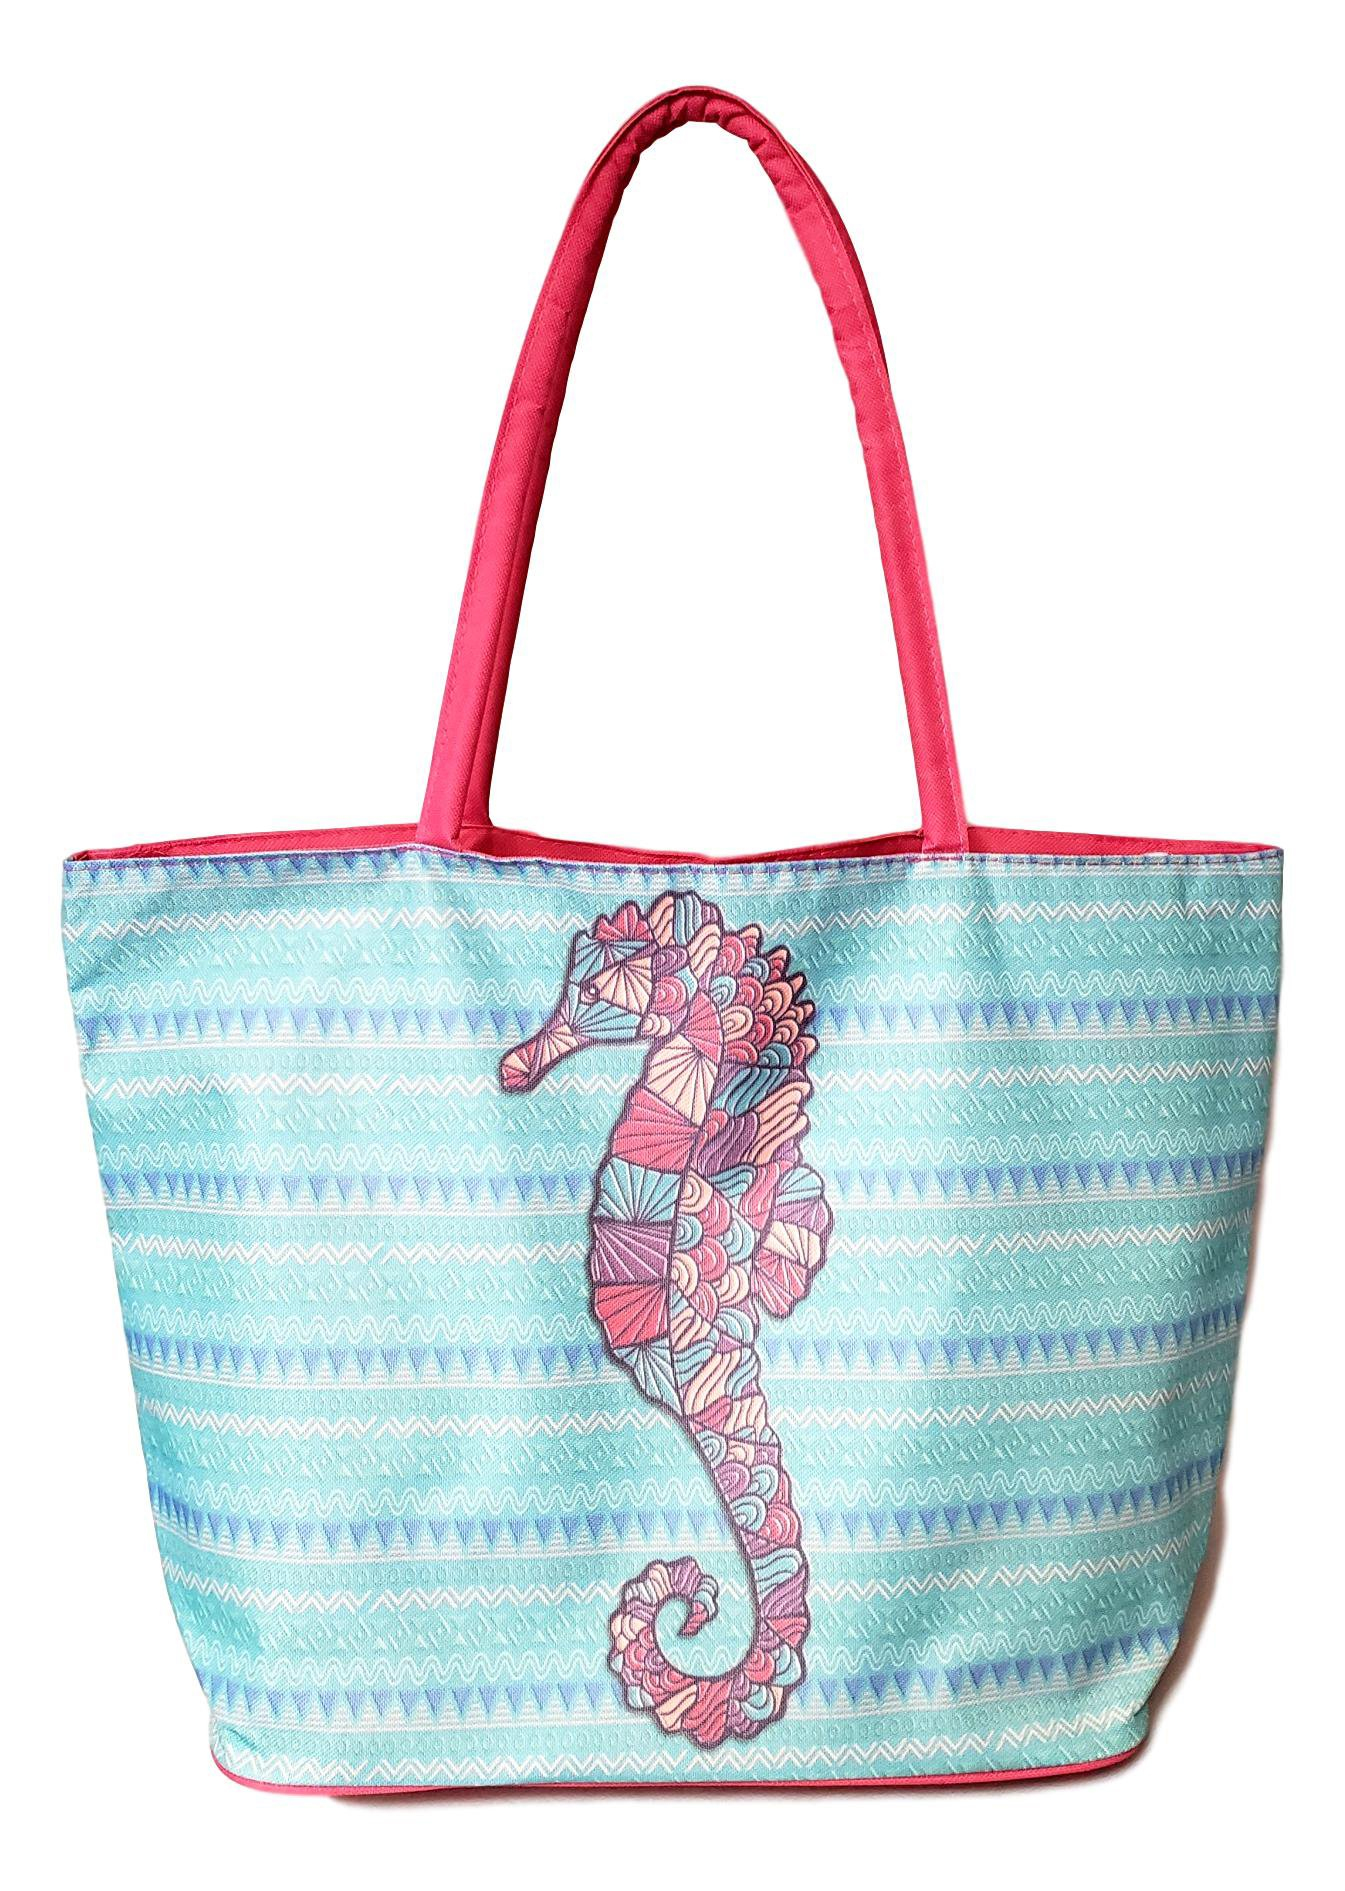 Stained Glass Design with Aztec Stripe Beach Bag Tote (Aqua - Pink Seahorse) by 101 BEACH